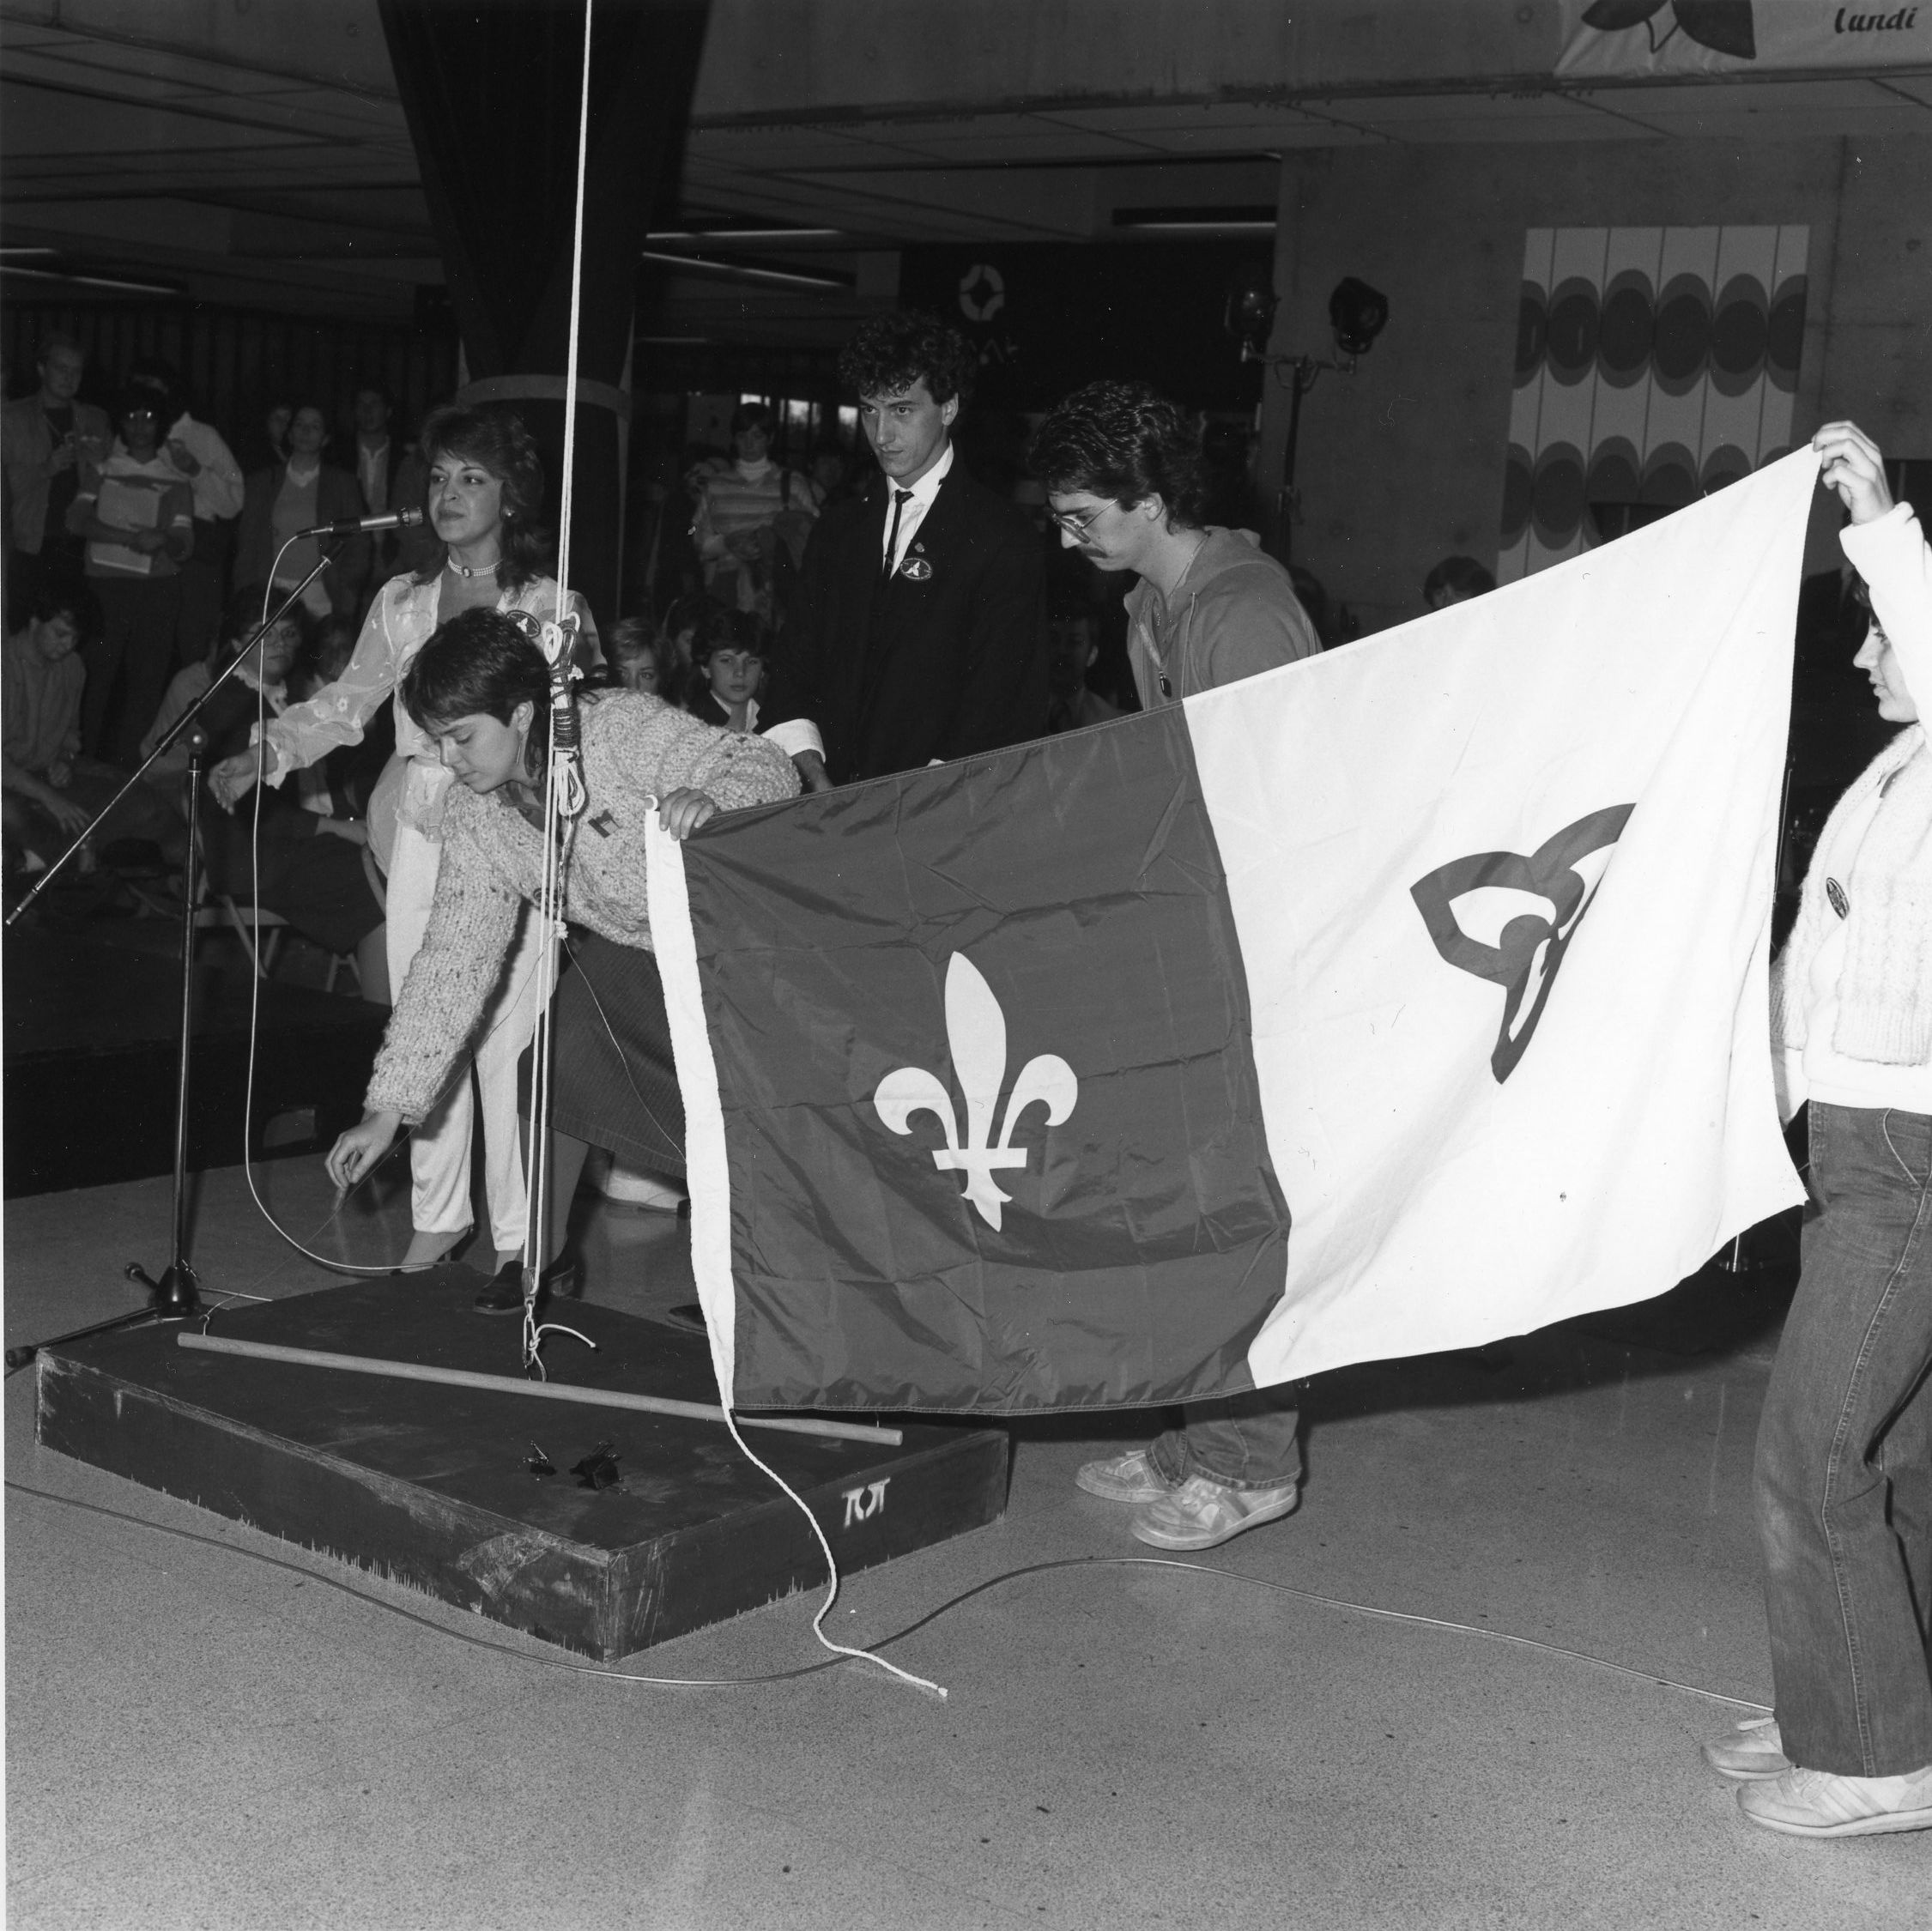 Students holding a Franco-Ontarian flag during a ceremony